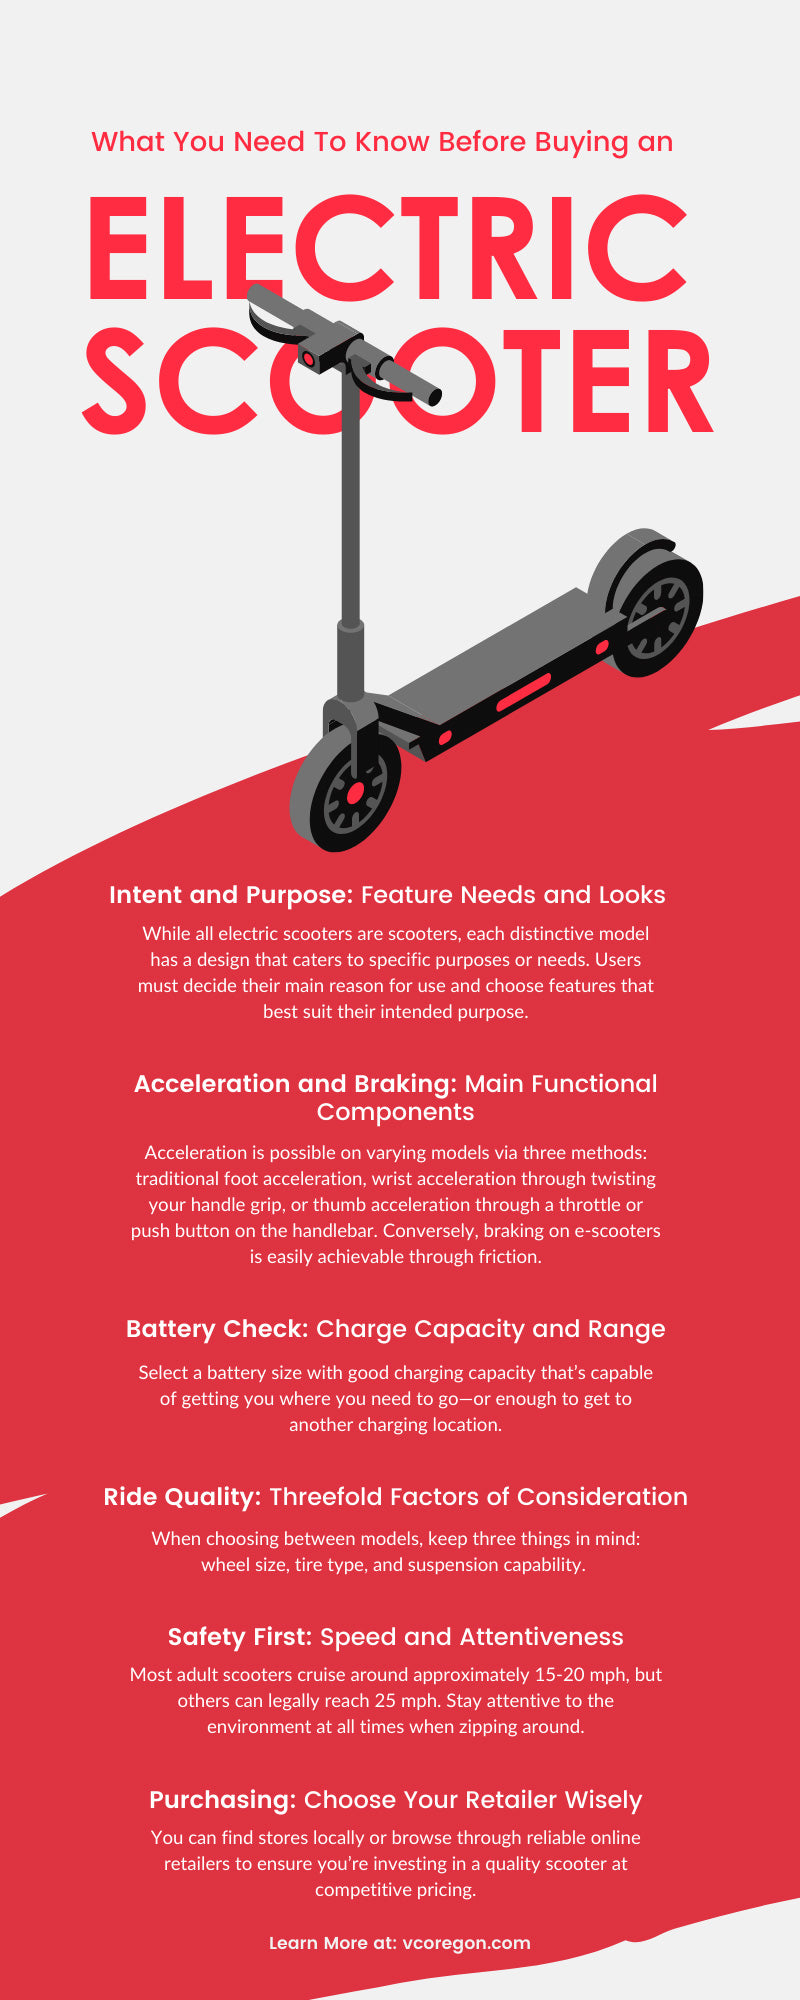 What You Need To Know Before Buying an Electric Scooter